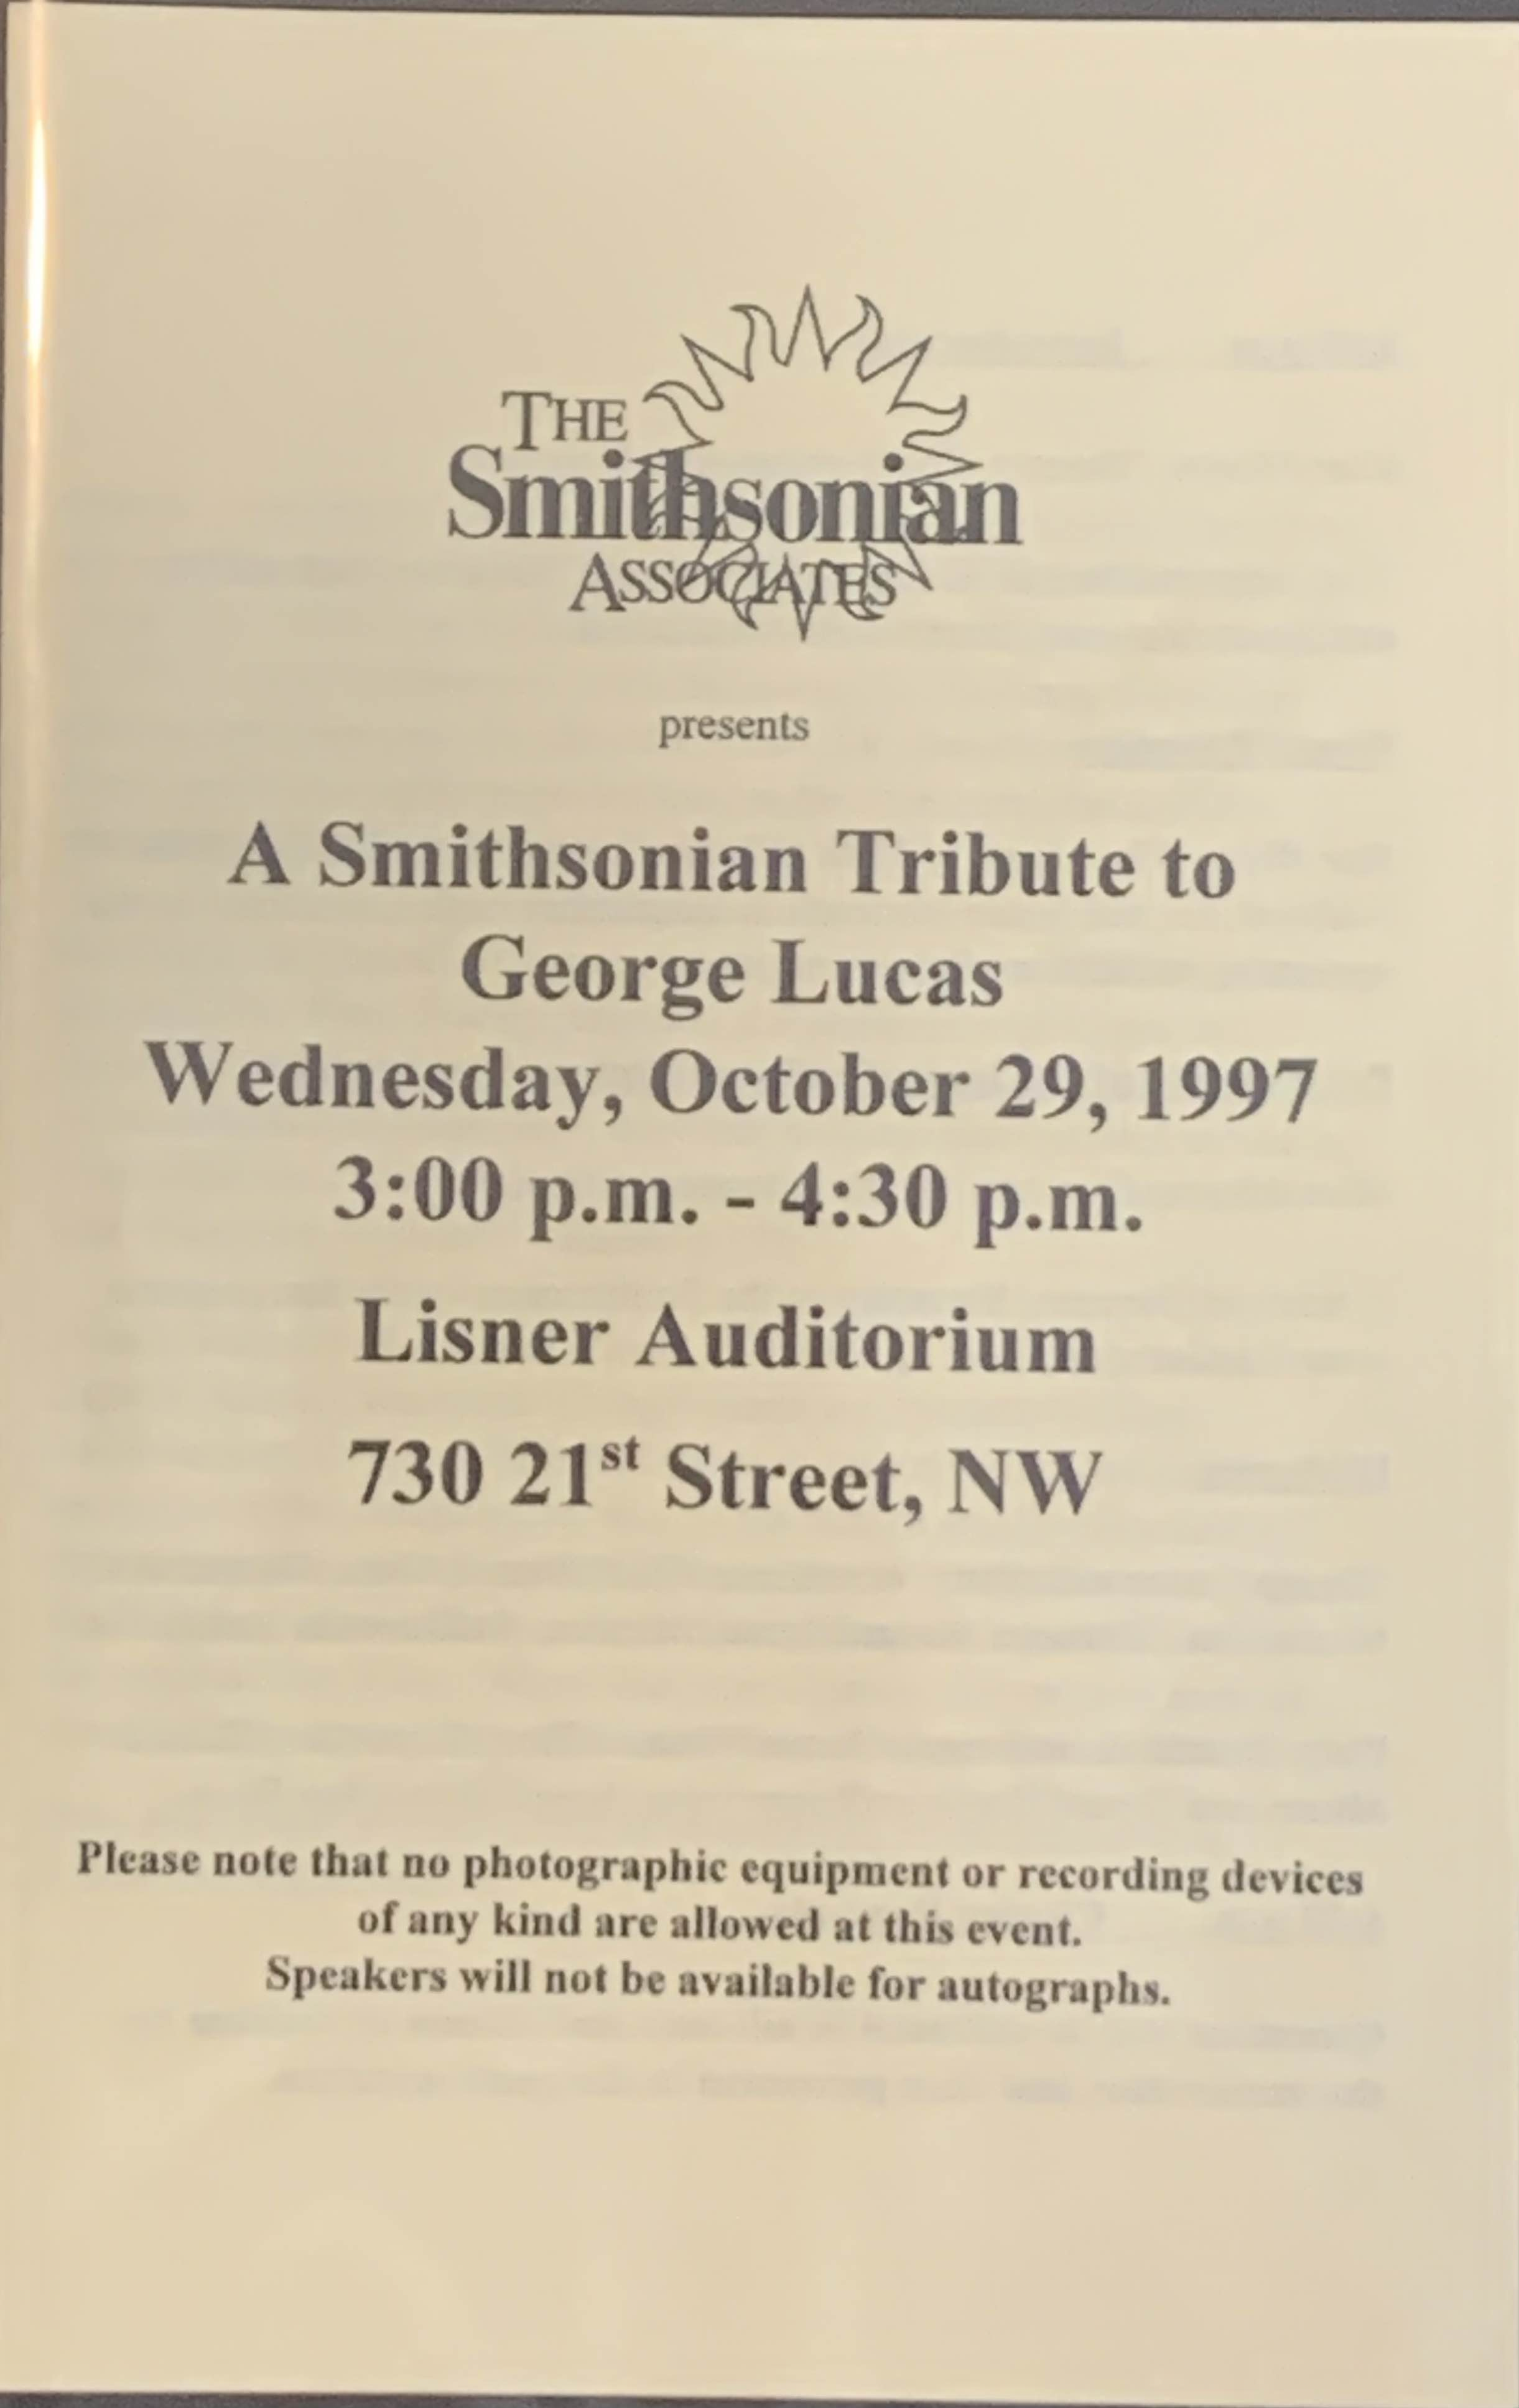 A Smithsonian Tribute to George Lucas October 29, 1997